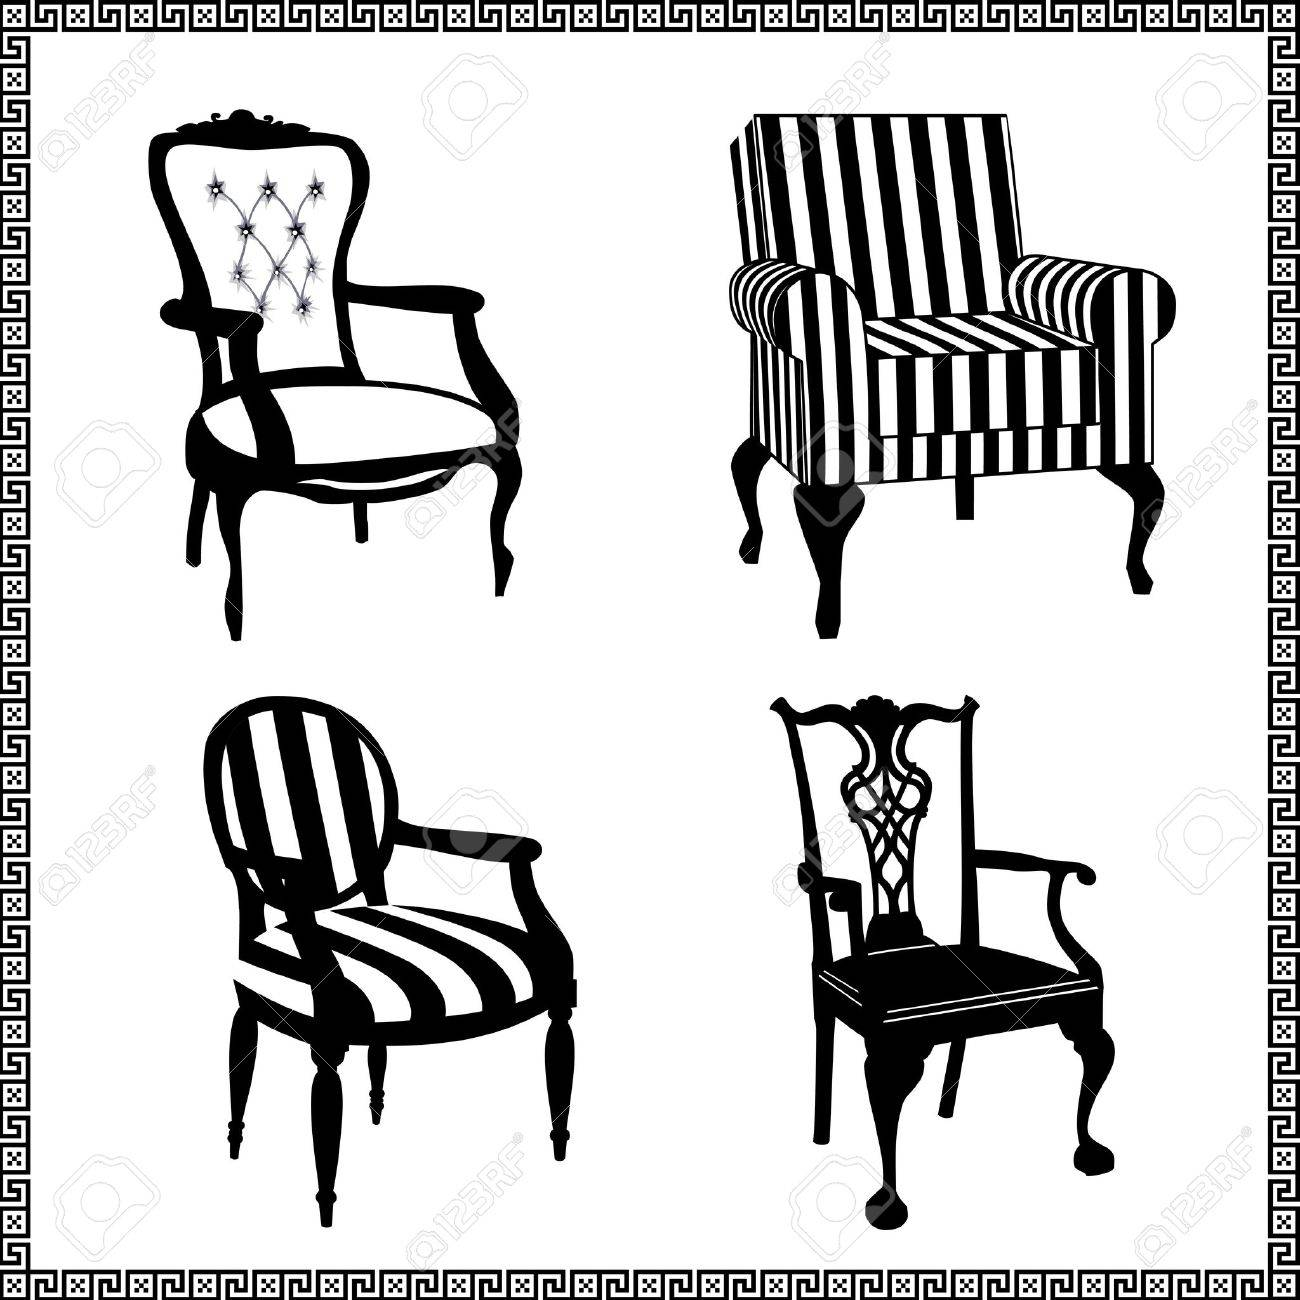 Set of antique chairs silhouettes Stock Vector - 9718251 - Set Of Antique Chairs Silhouettes Royalty Free Cliparts, Vectors